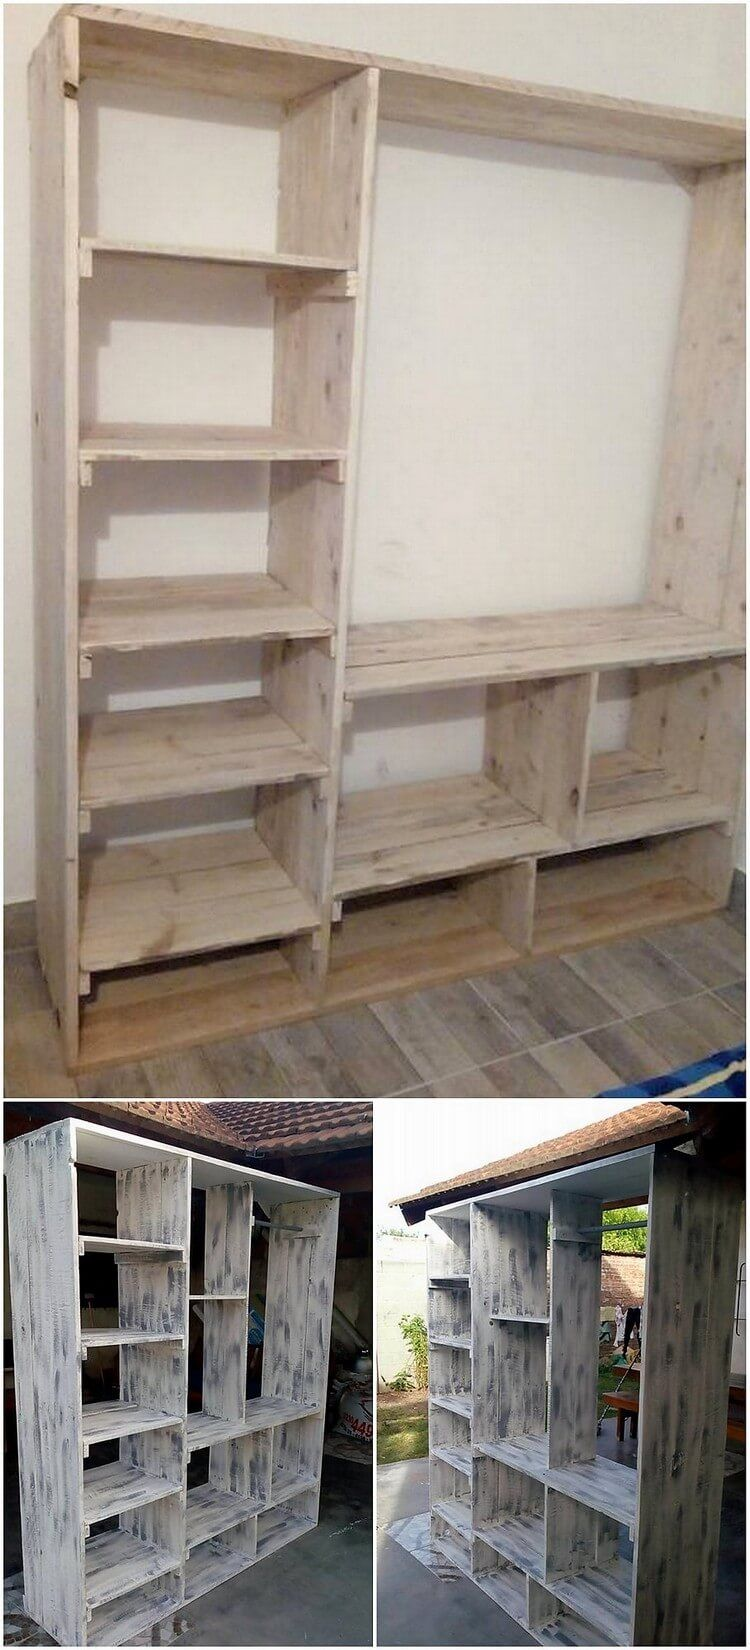 30 Amazing Ideas to Convert Old Wood Pallets into Something Useful ...